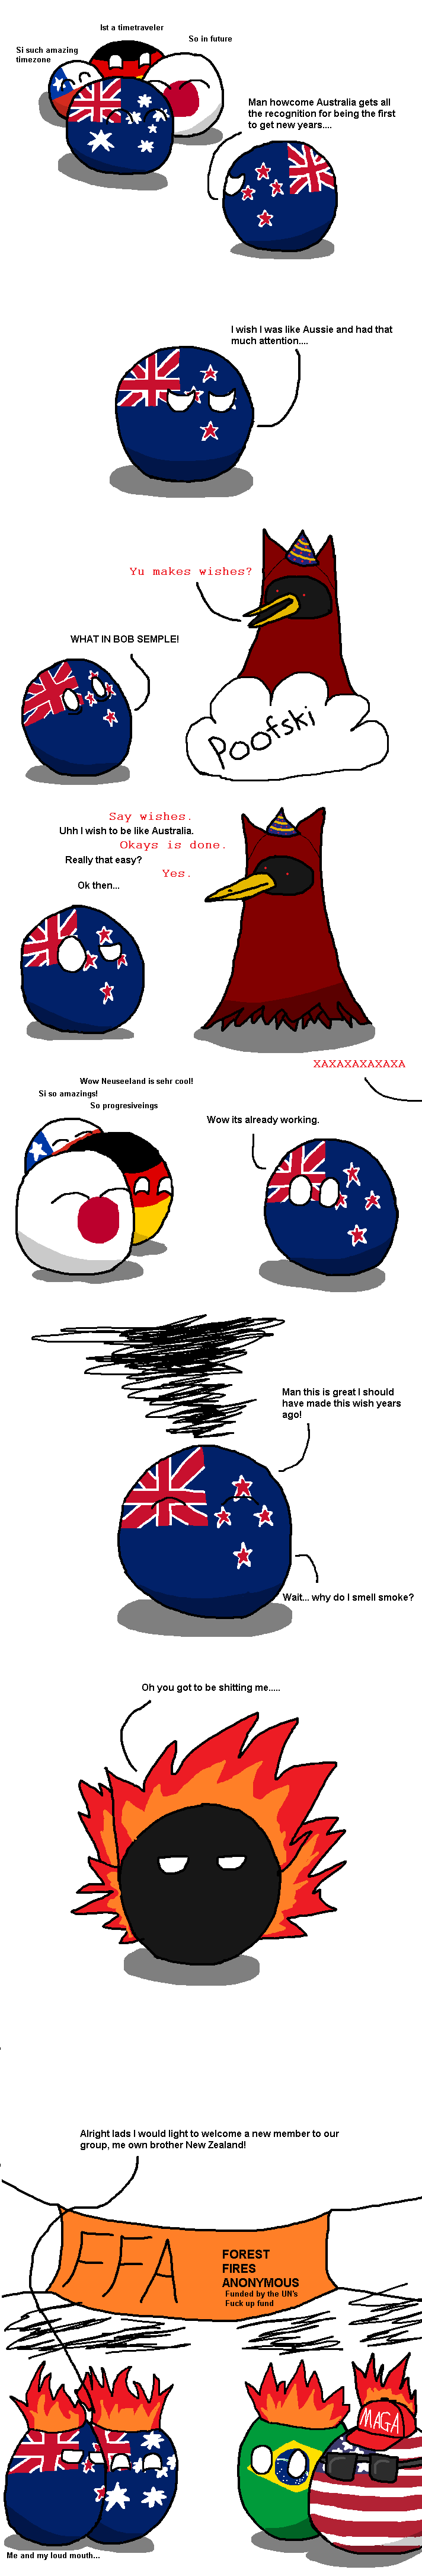 New Years Wishes polandball in 2020 New year wishes